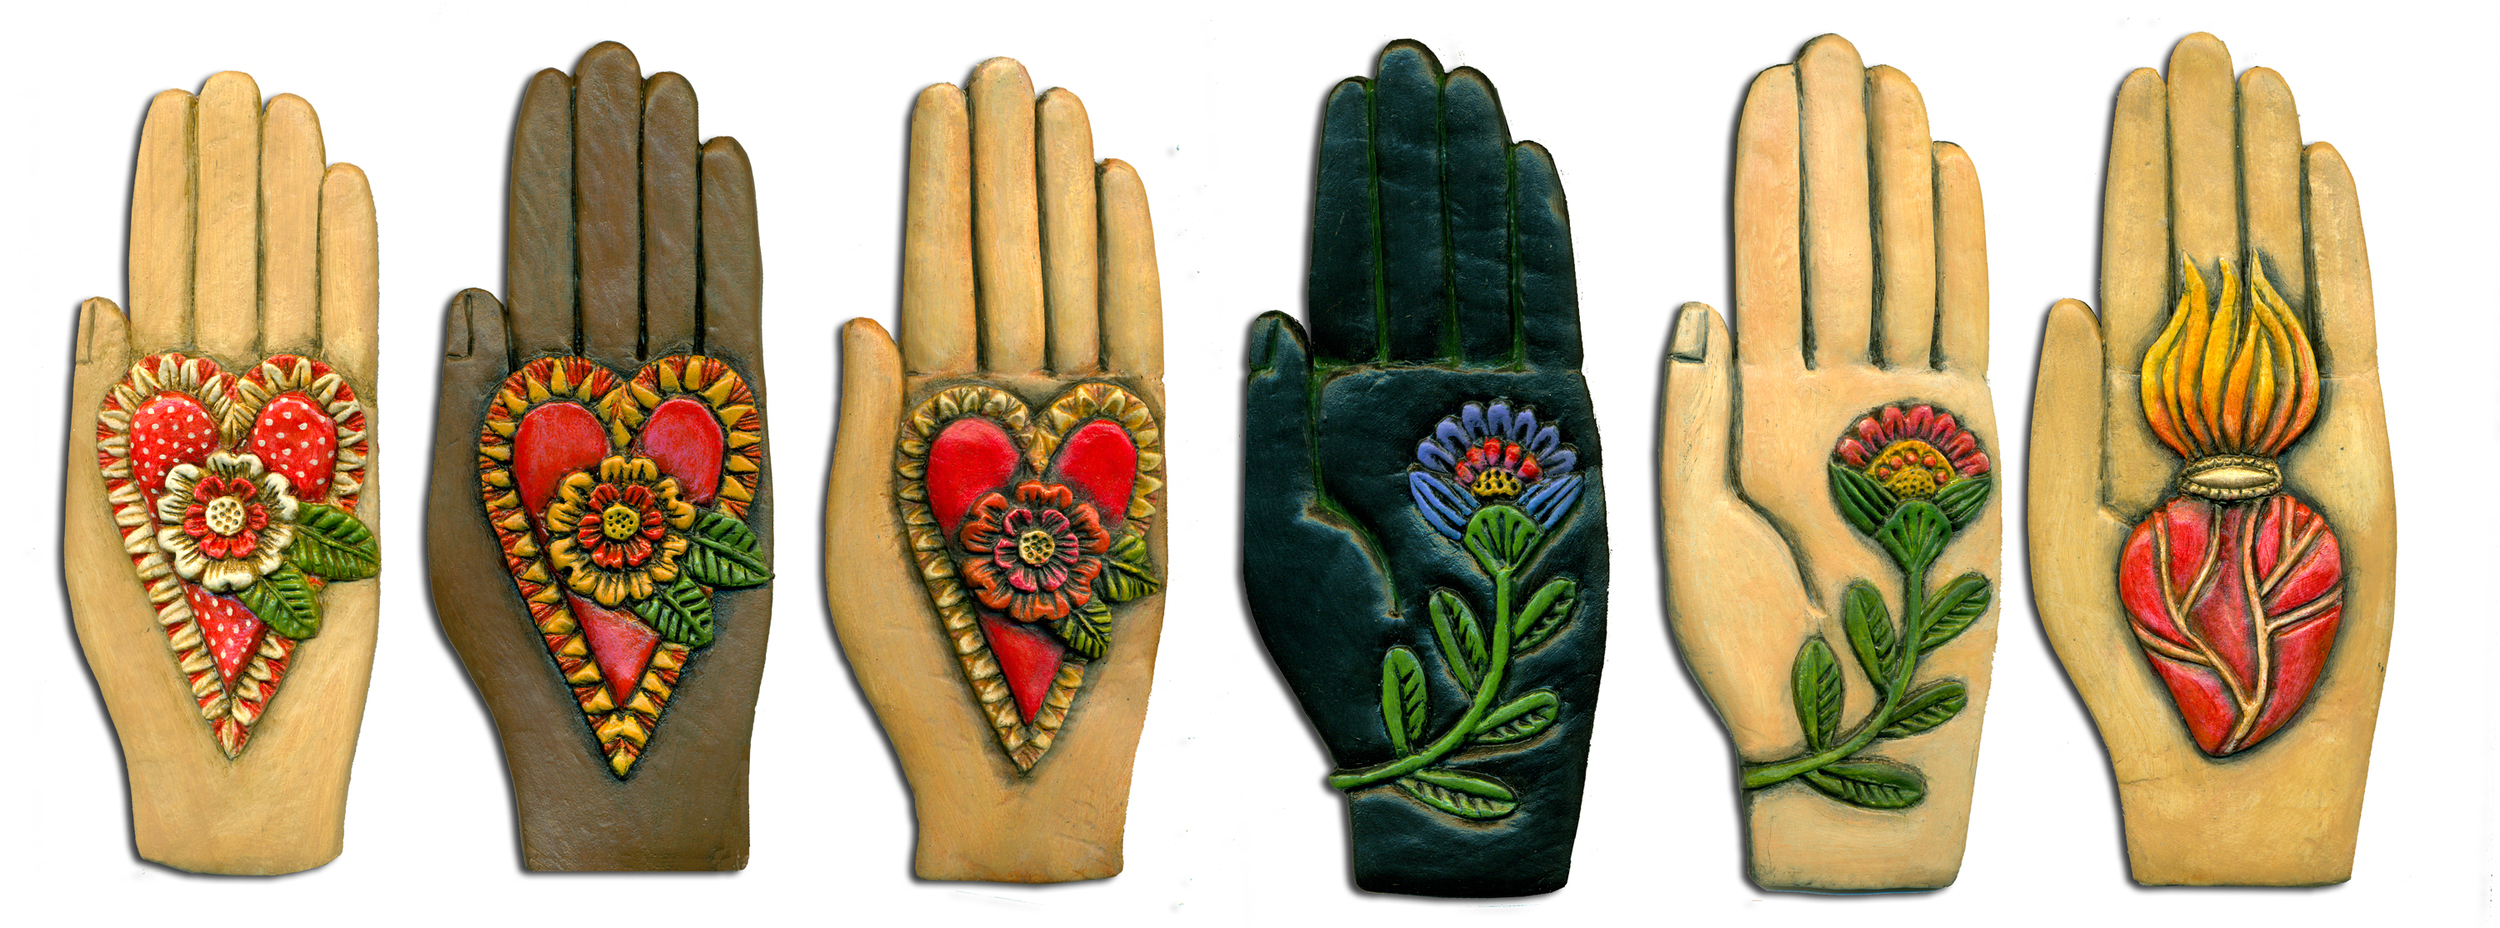 """HEARTFELT HANDS, PAPER CLAY AND ACRYLIC, EACH HAND IS 2 1/4"""" X 5 1/2""""."""